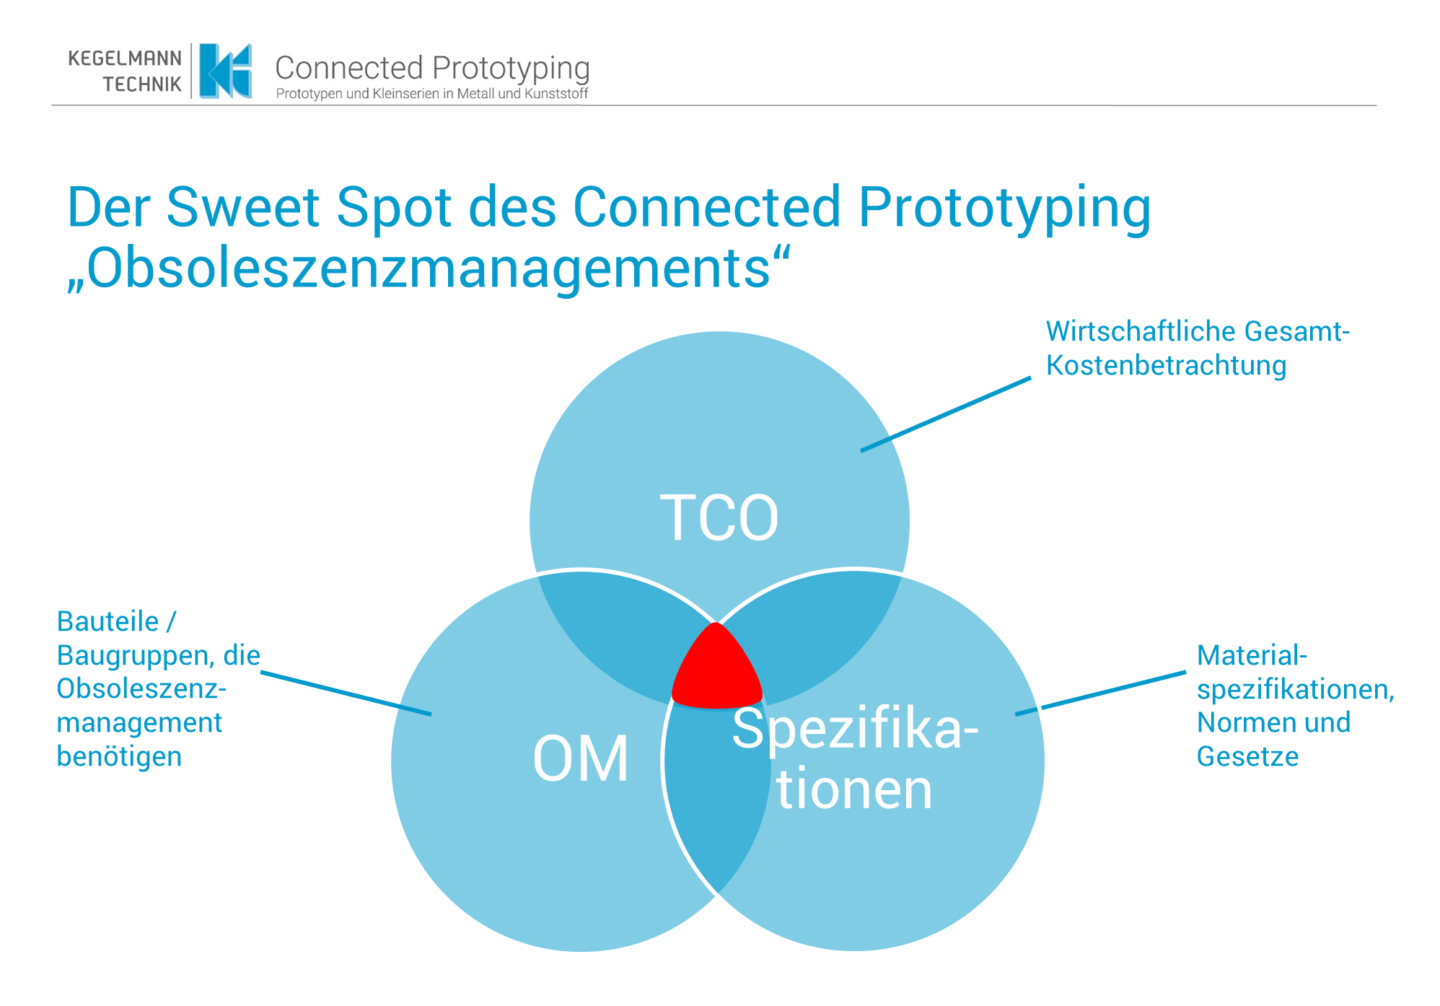 Sweet Spot des Connected Prototyping - Obsoleszenzmanagement